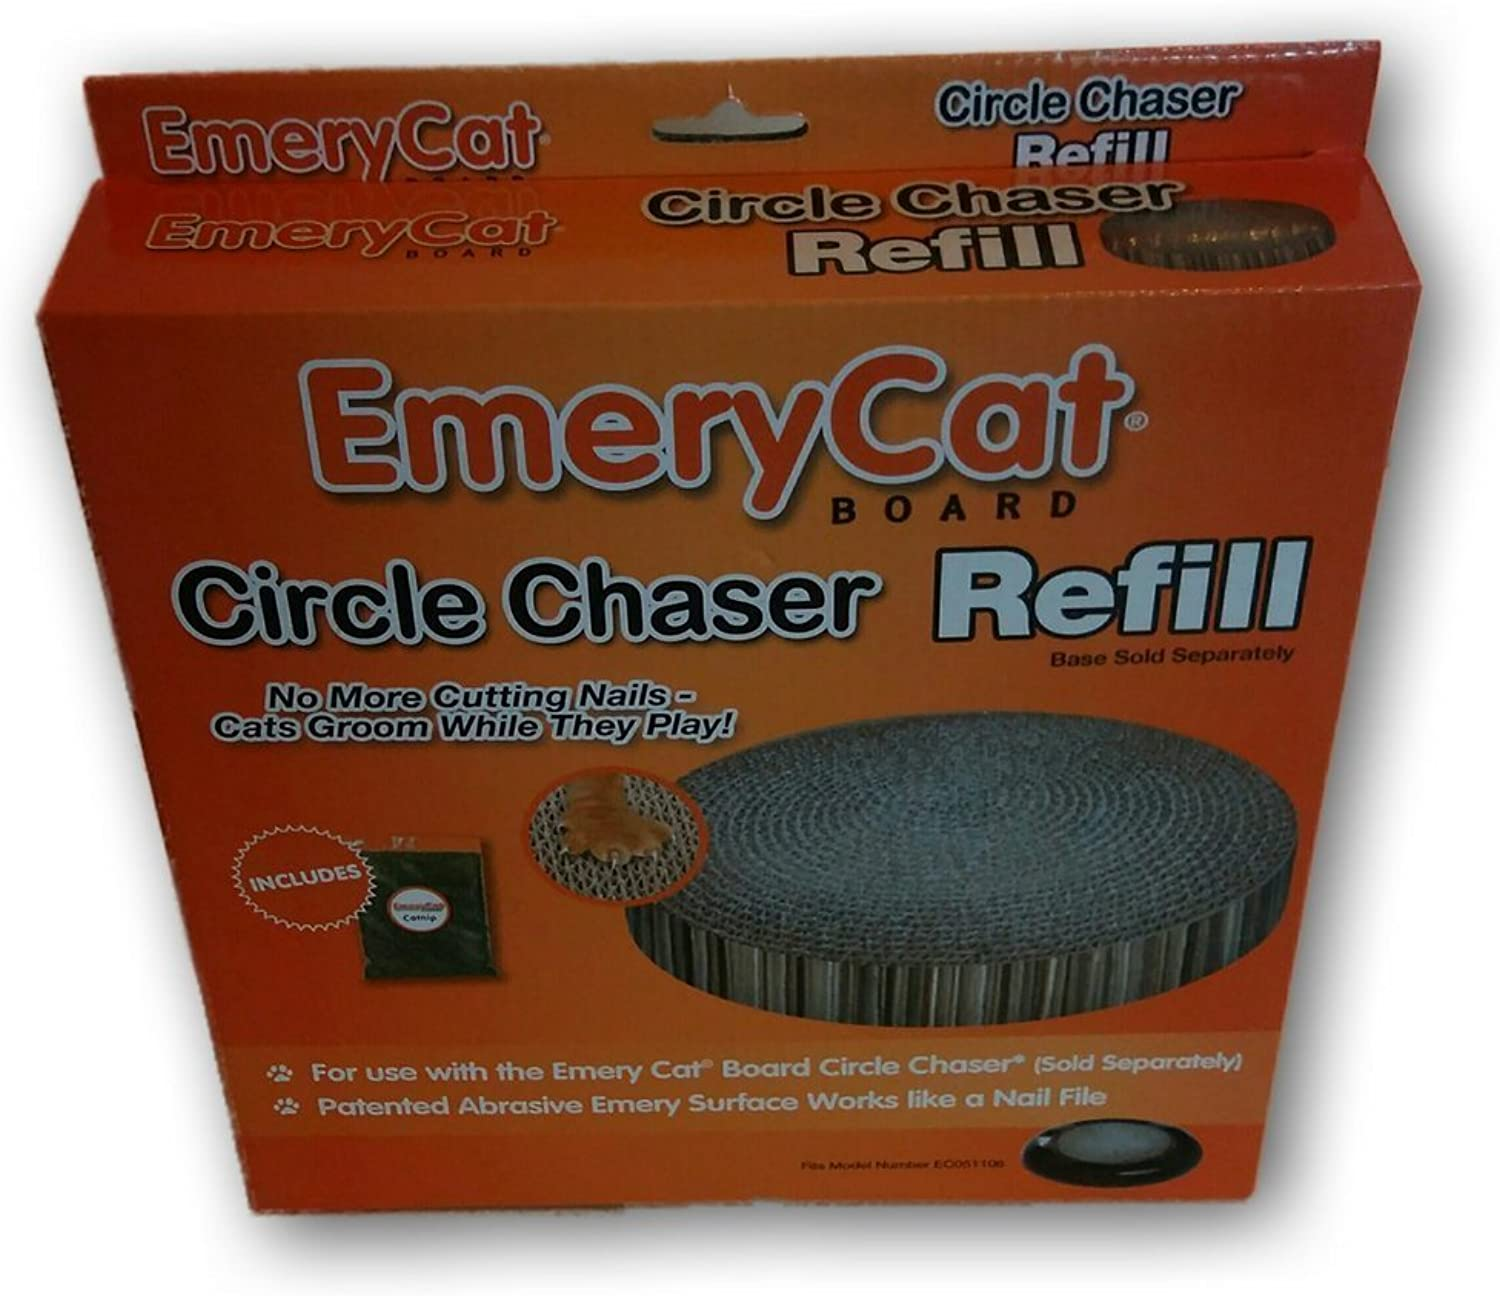 Emery Cat Circle Chaser REFILL